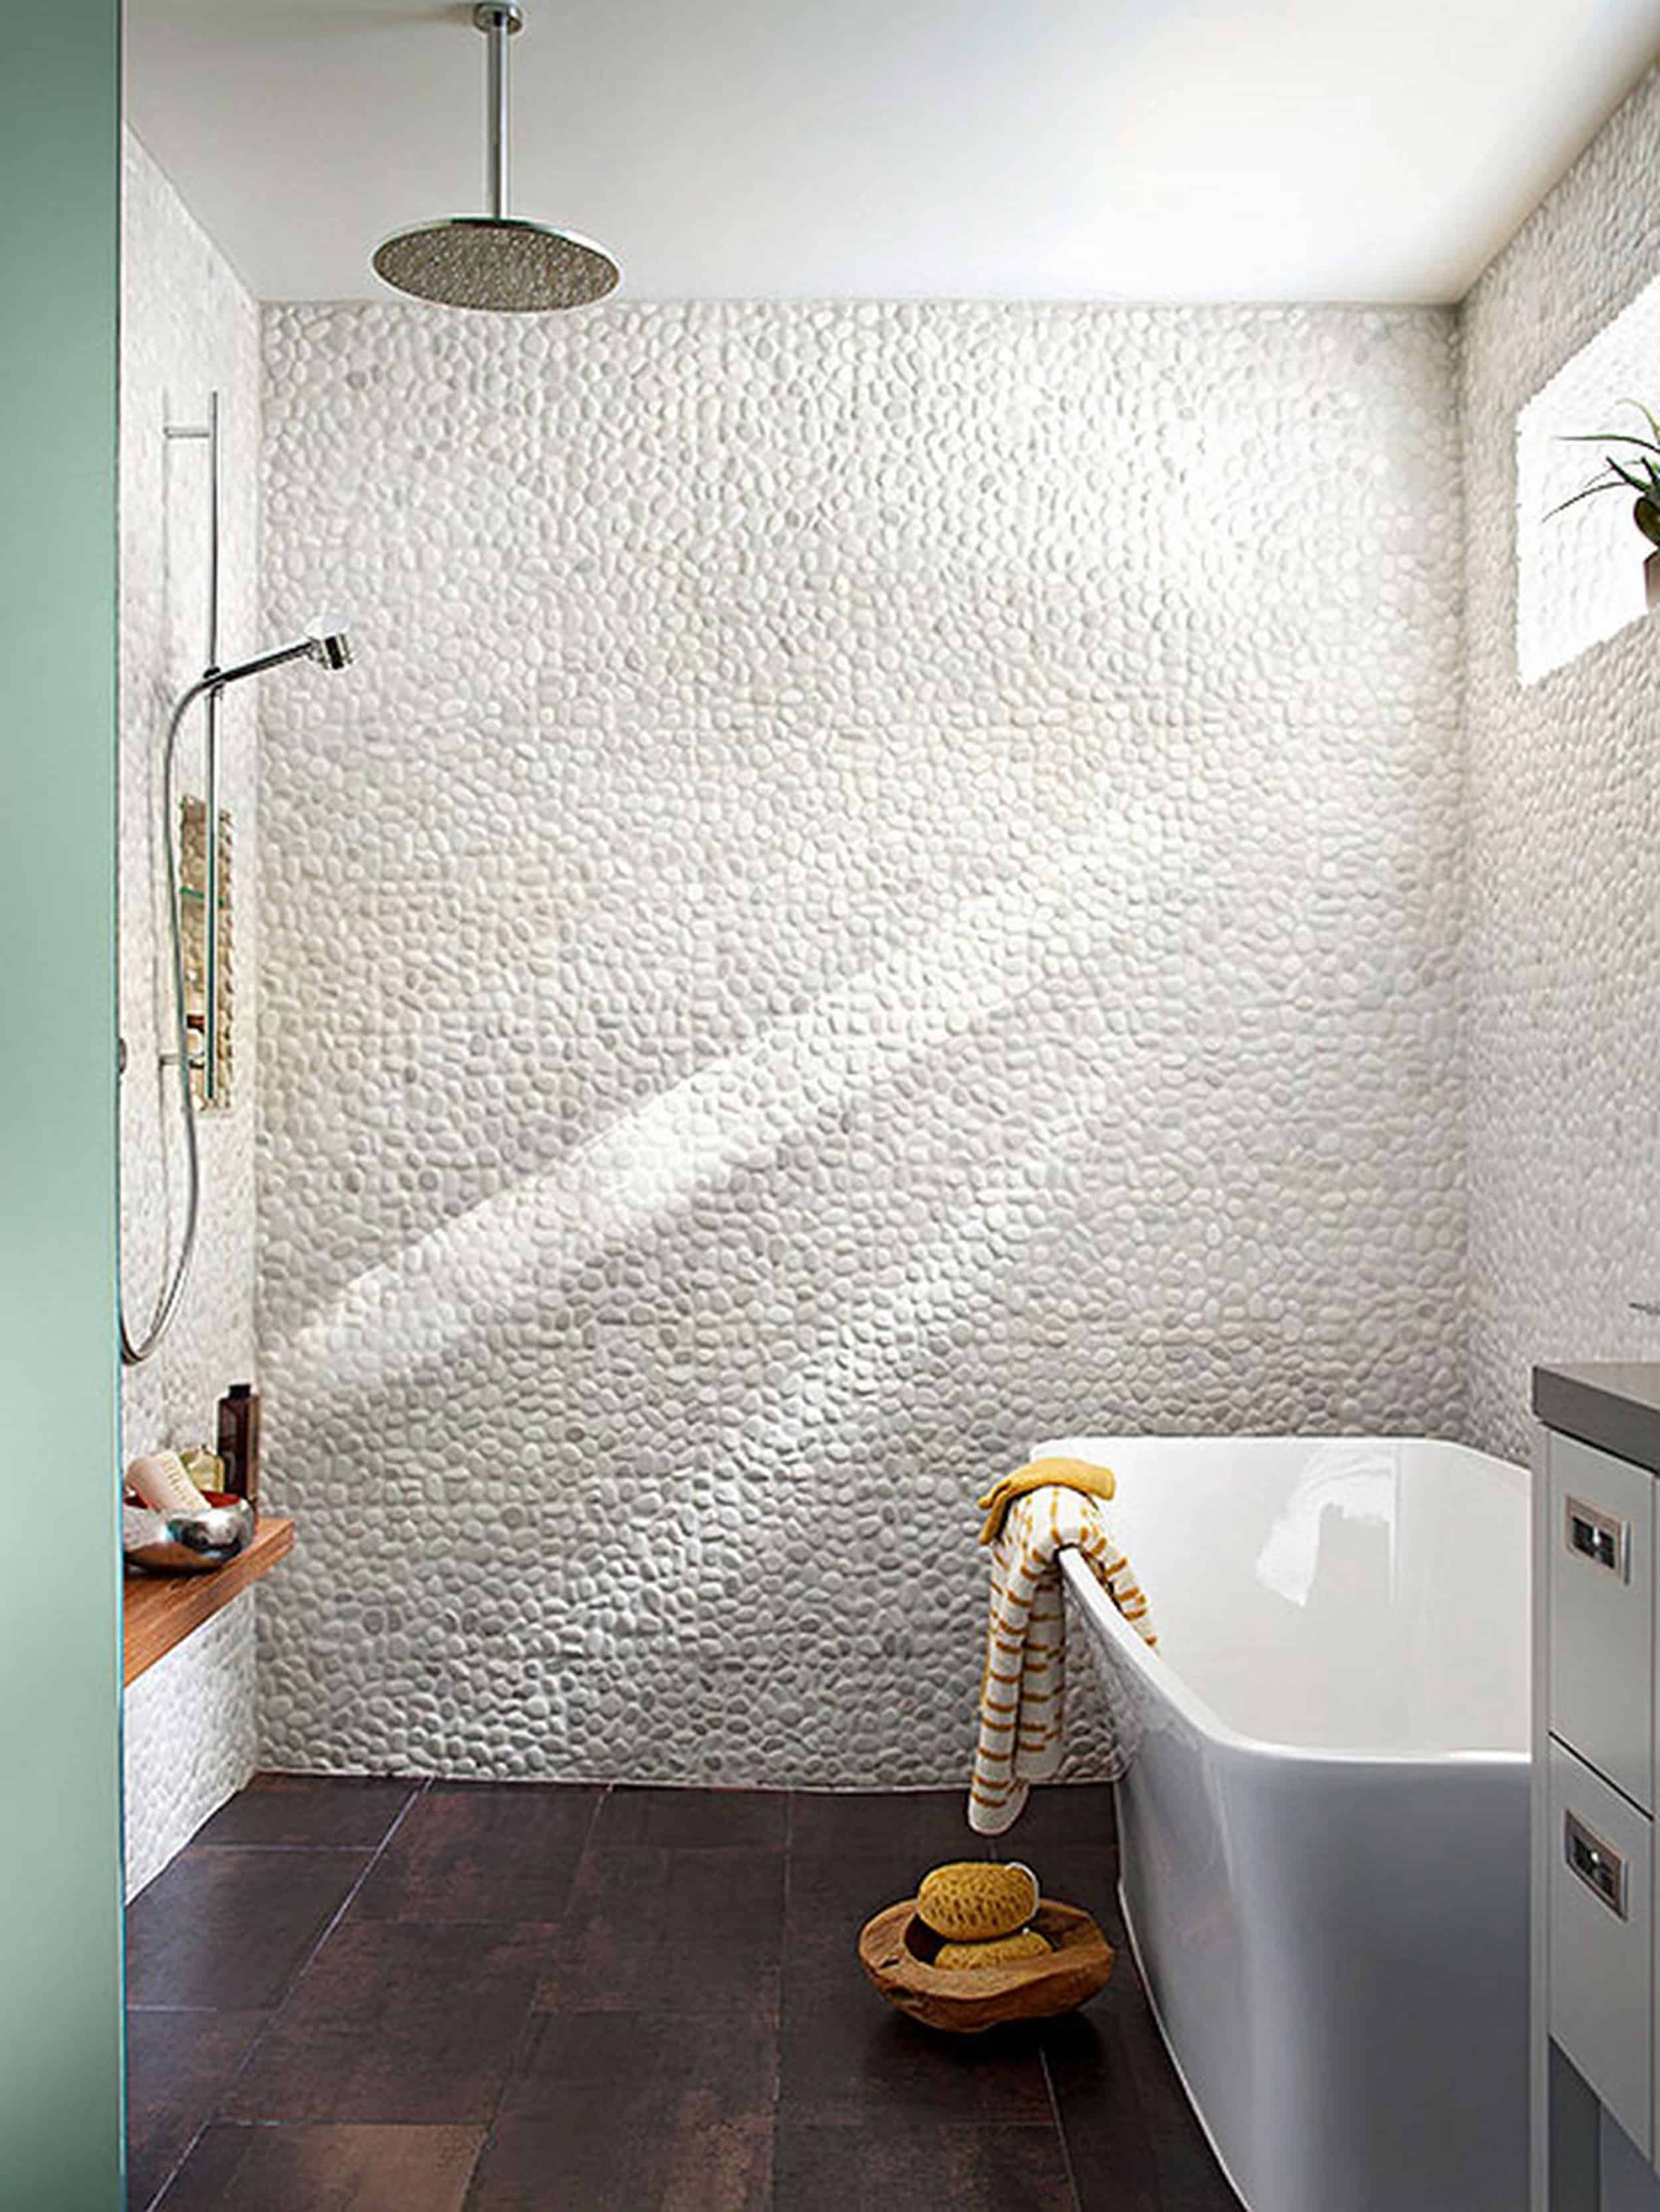 Emily Henderson Mountain Fixer Upper Rethink The Pebble Bathrooms free standing tub